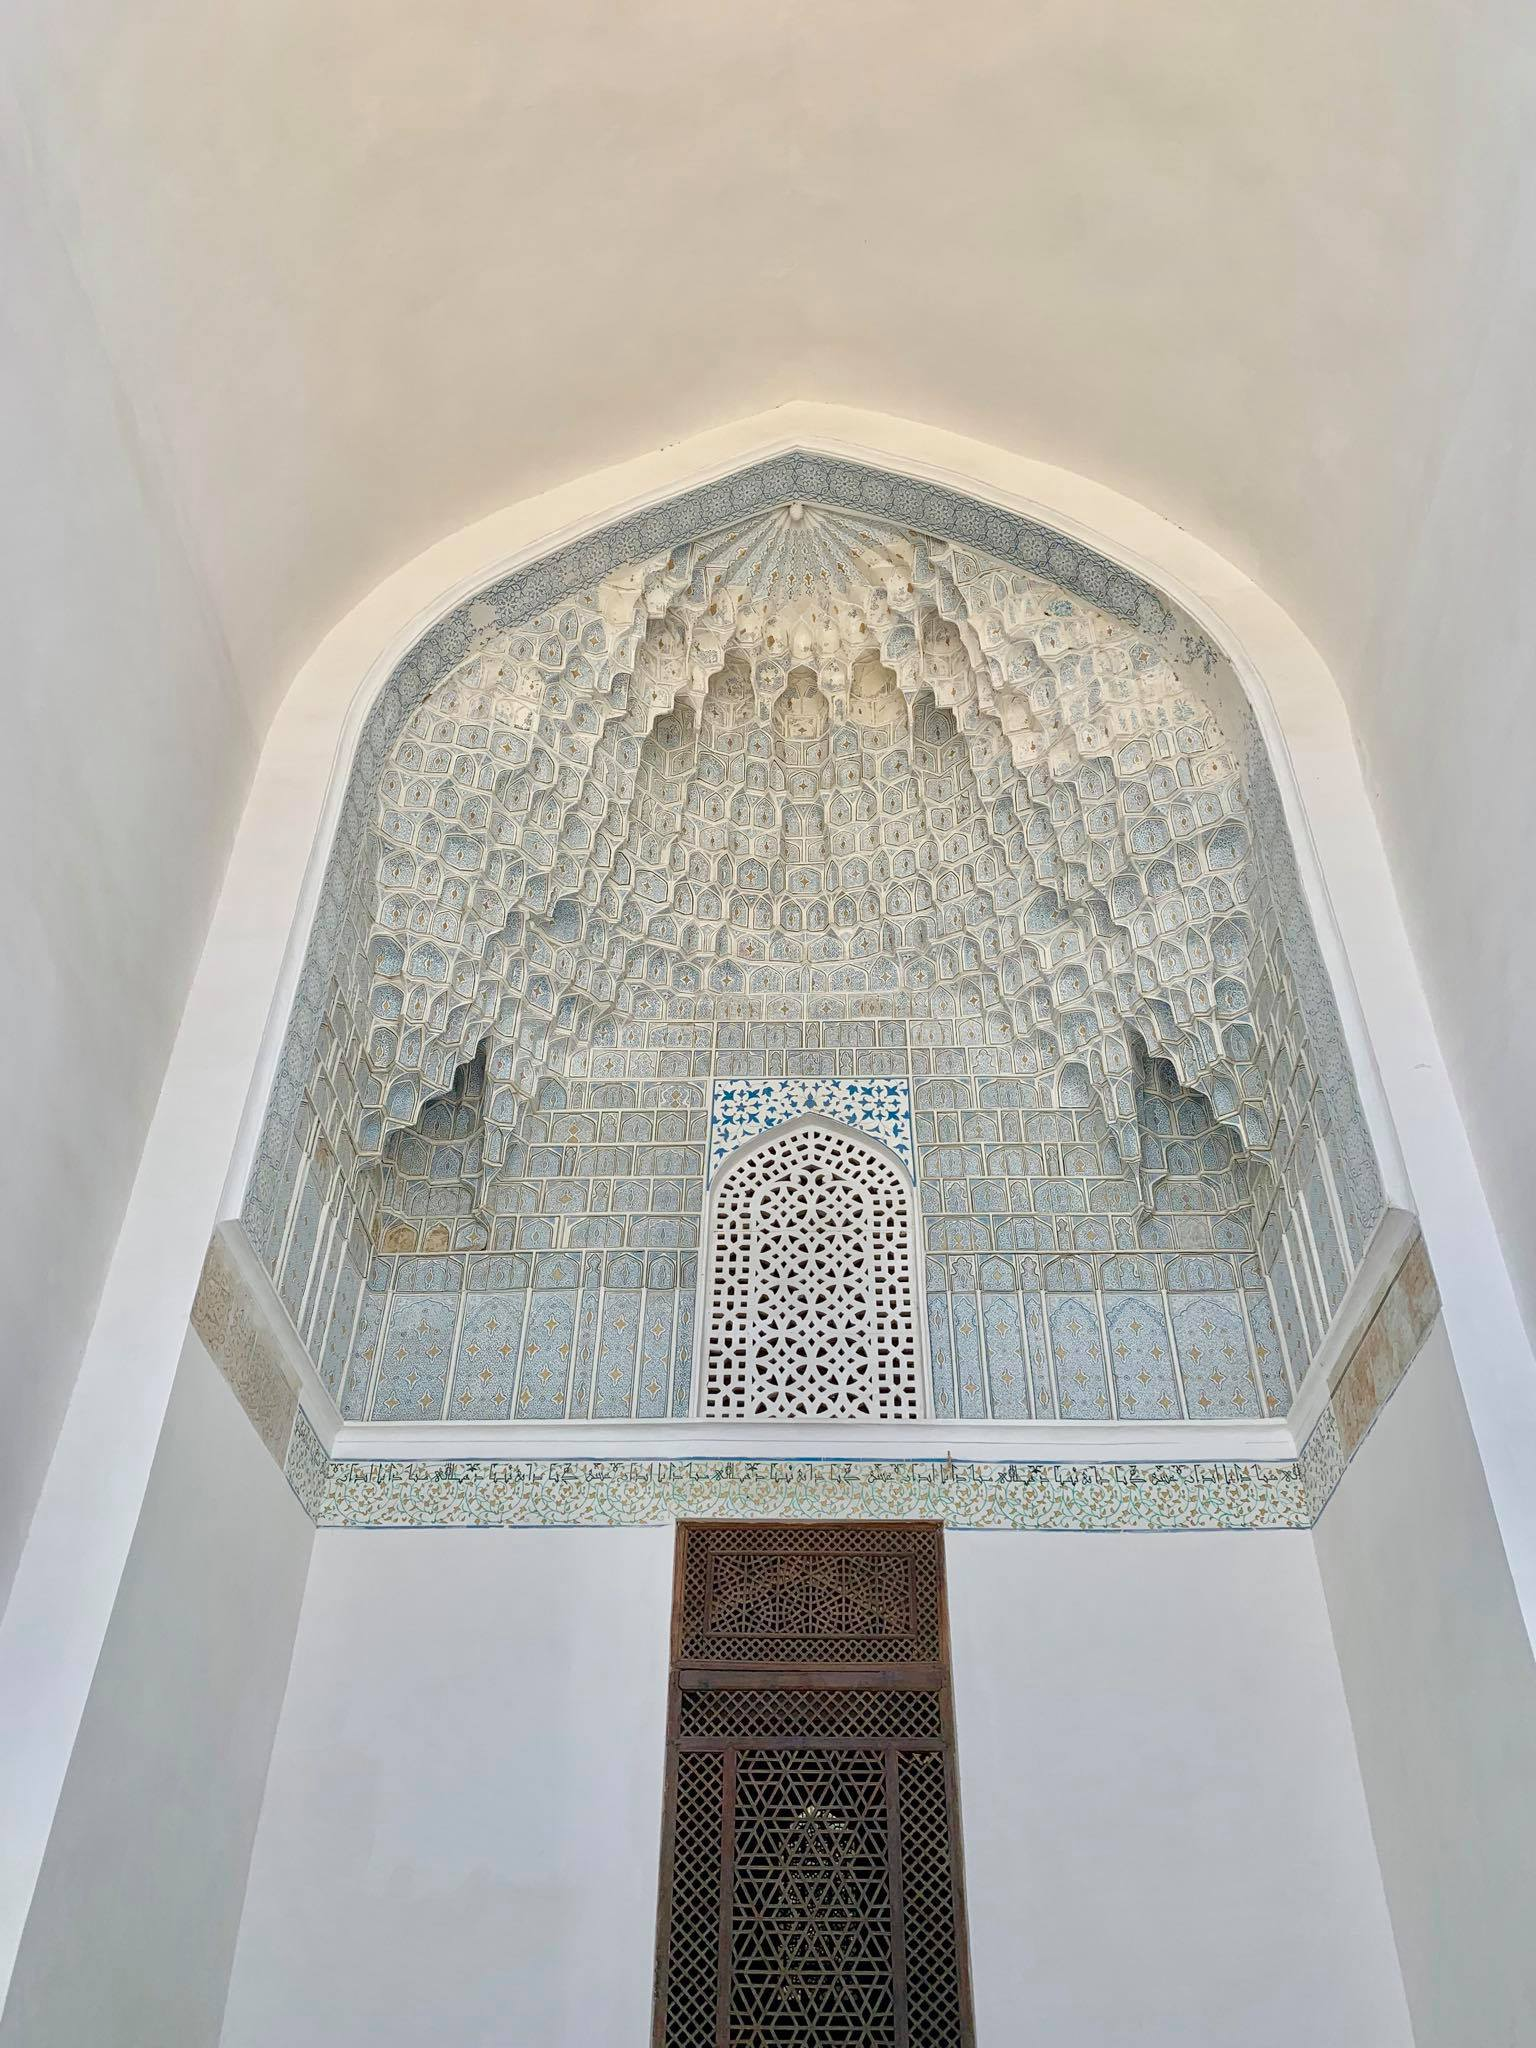 Kach Solo Travels in 2019 Hello from Samarqand  Samarkand in the southeastern part of Uzbekistan13.jpg